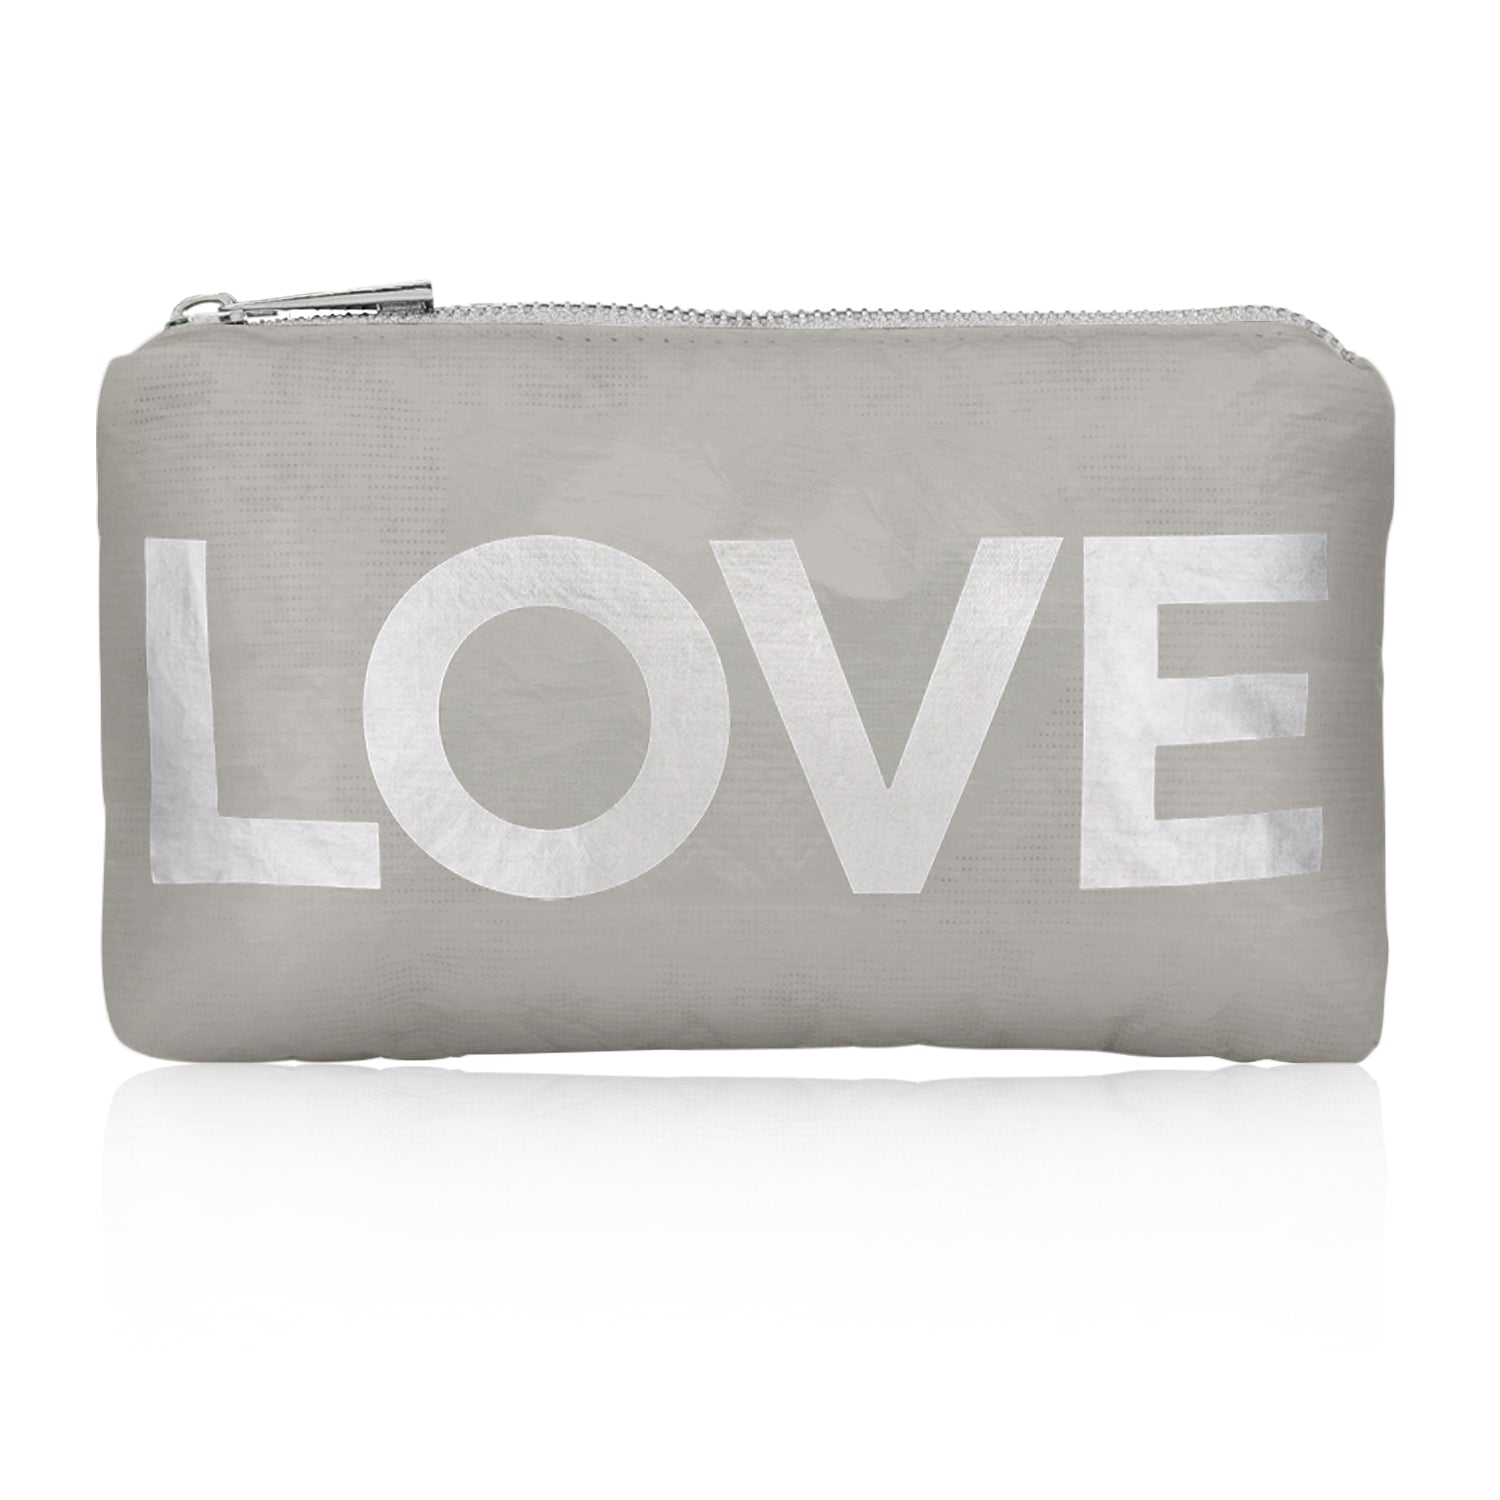 Mini gray travel pouch with metallic silver love emblem